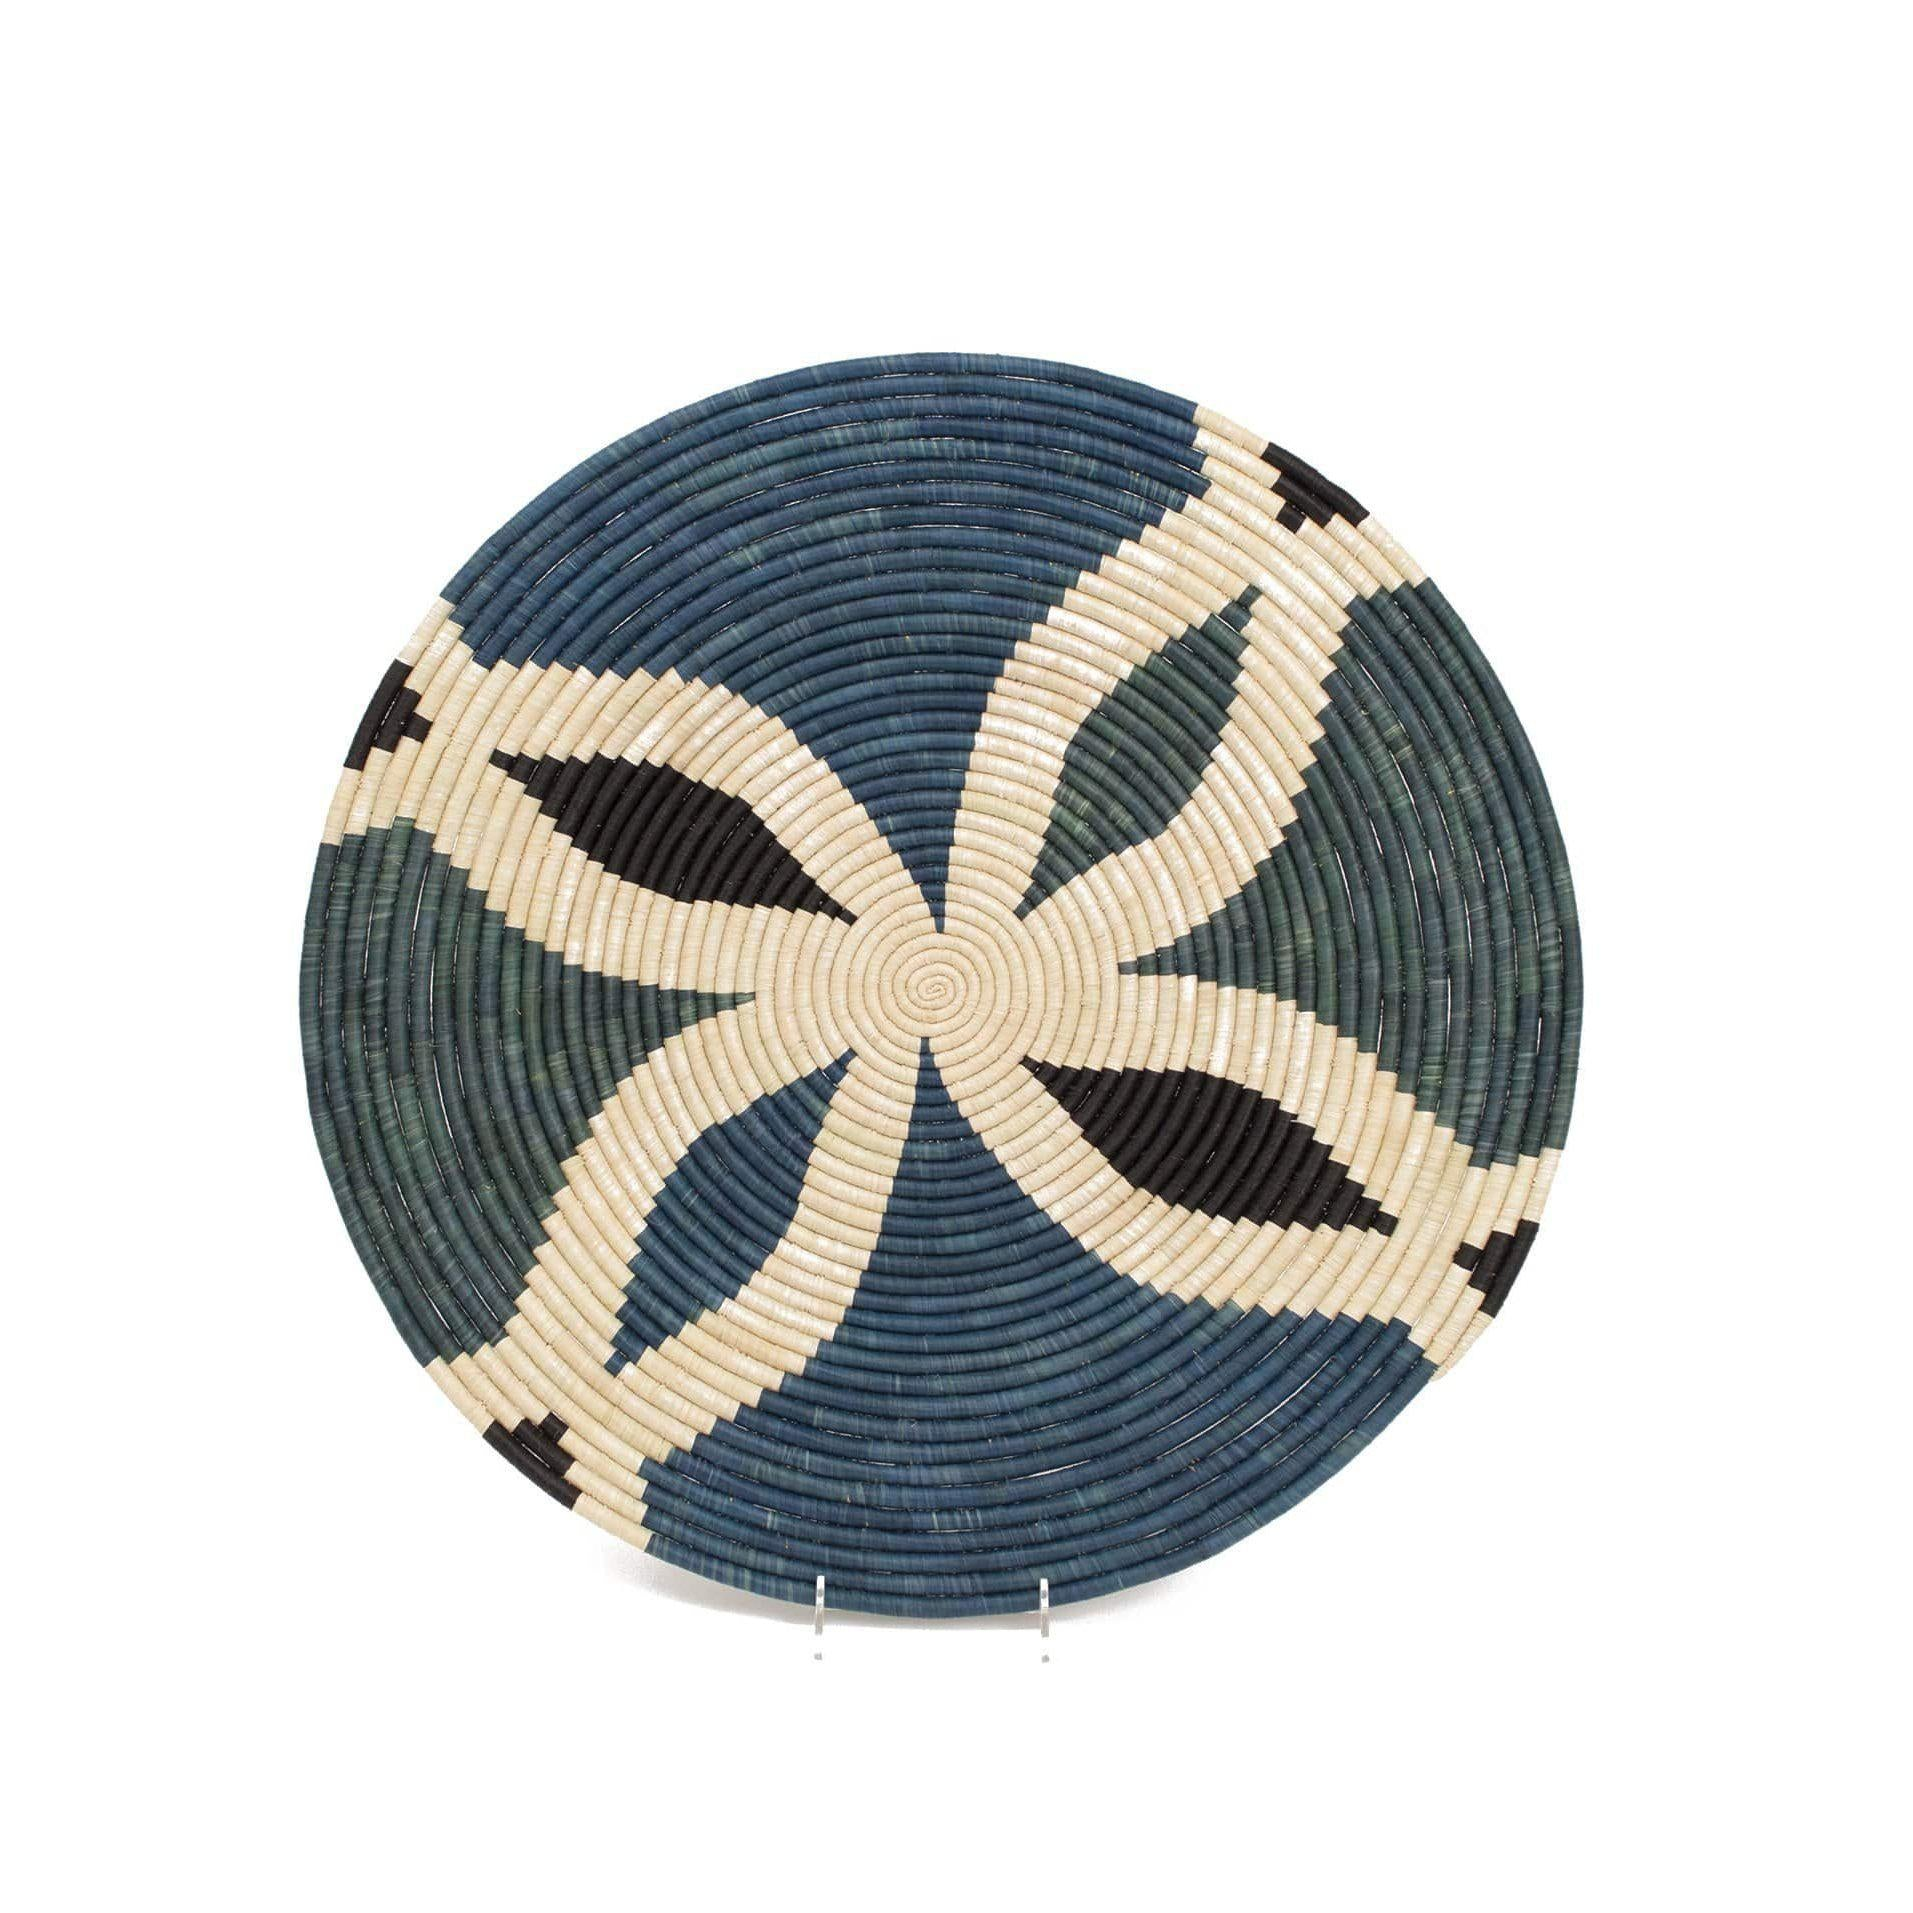 Woven Wall Art Plate Cool Benoite | woven wall baskets | rattan wall decor | decorative plate | boho wall decor | plate decor | wall decor | wall art | home decor